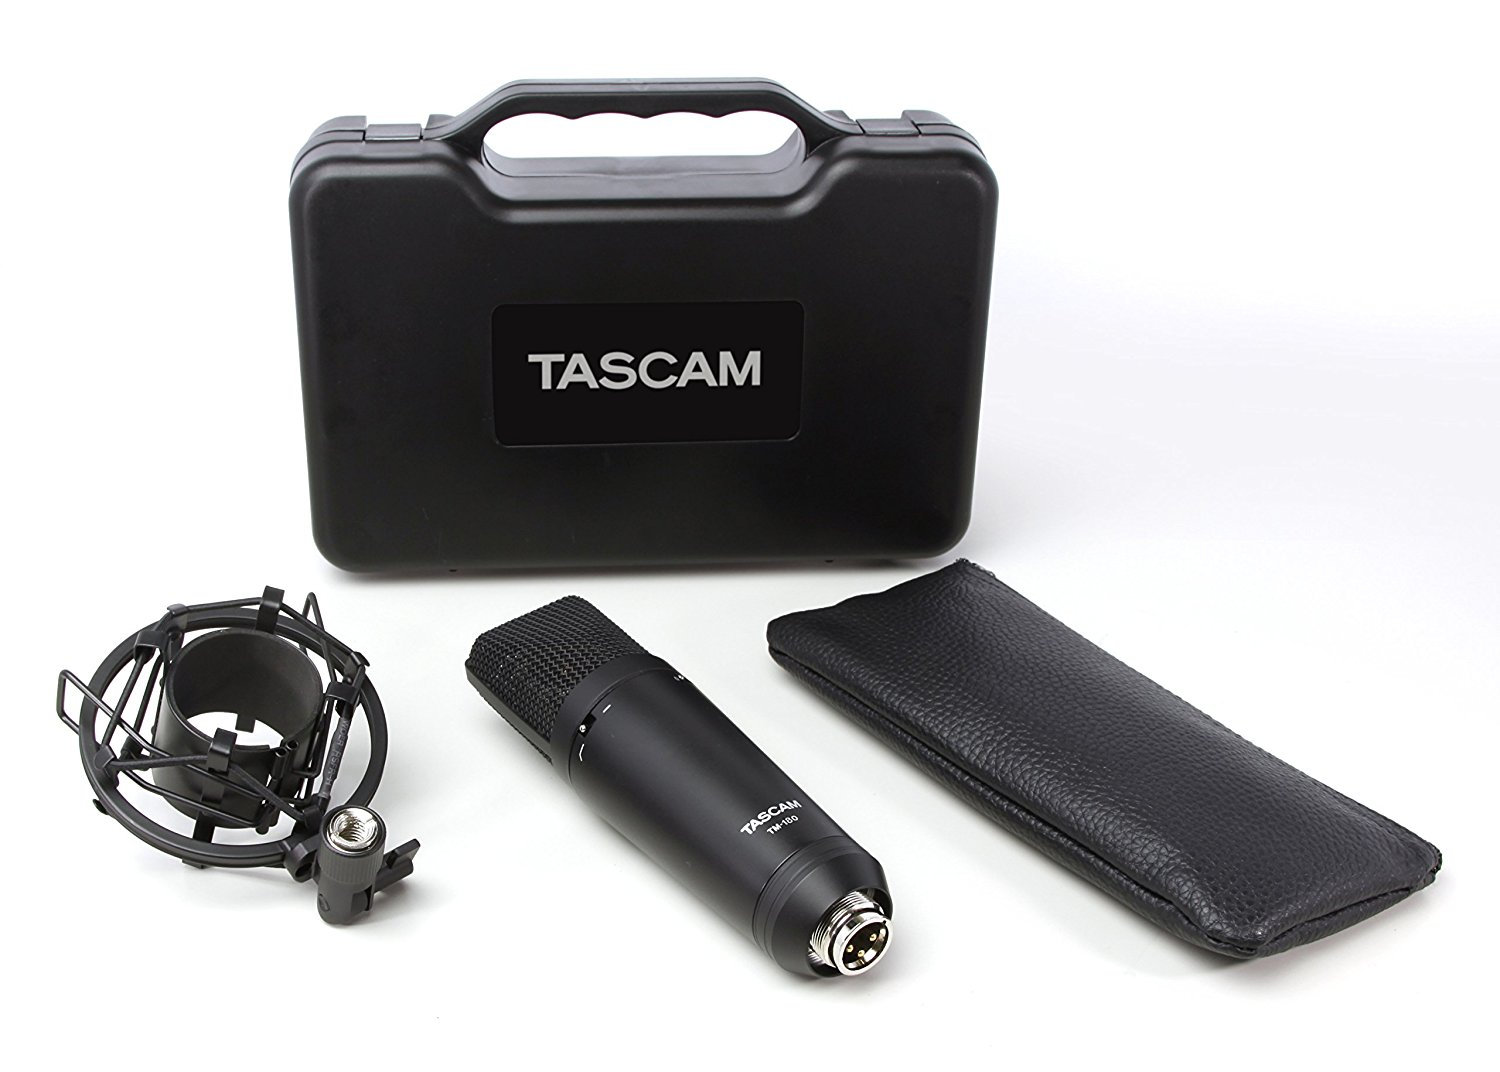 Tascam Studio Condenser Microphone Circuit City Image For From